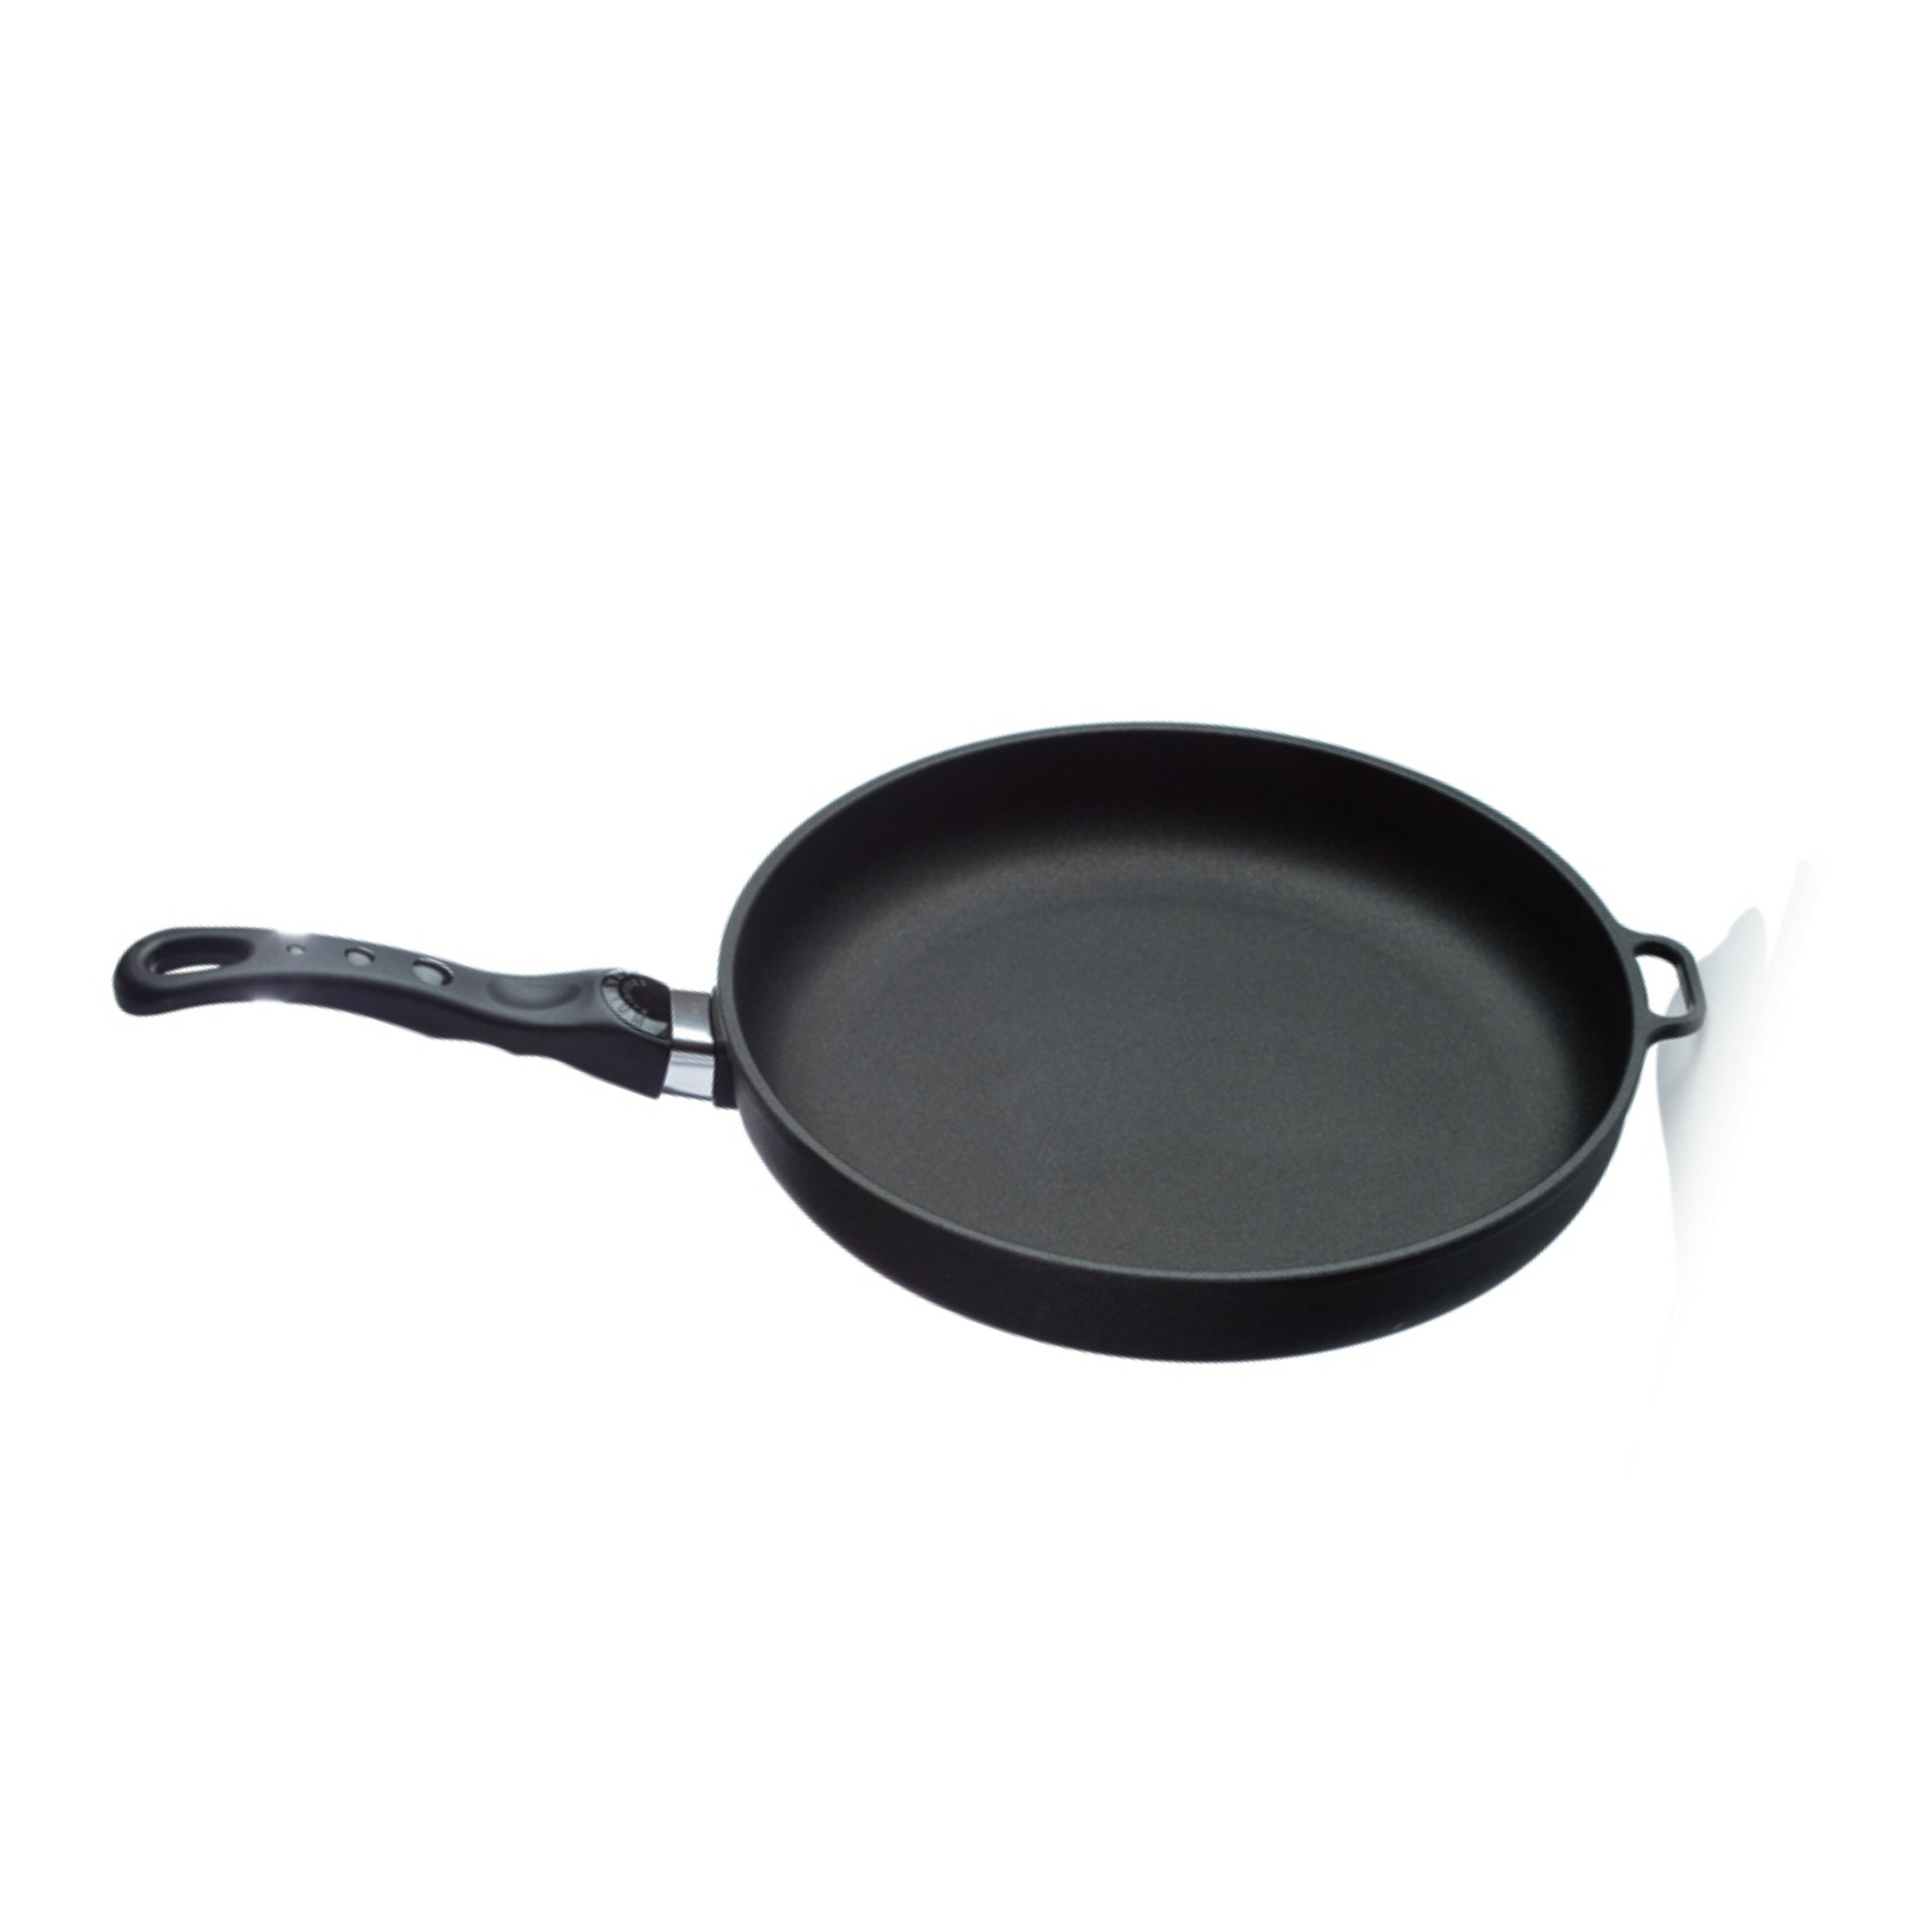 LOW RIM FRYING PAN 20x5    This 20x5cm size is great for cooking small to medium sized dishes. Young Living's titanium pans are premium cookware products that cook evenly without sticking, won't warp or lose their shape, and don't have Teflon coating. The titanium coating allows you to cook with little or no fat and is non-porous. The bases are made of cast aluminum, which conducts heat seven times faster than iron or steel. The patented handles have no screws or rivets to loosen and fall off. All handles, lids, and knobs are ovenproof up to 500° F.   Click here   to learn more about this product.